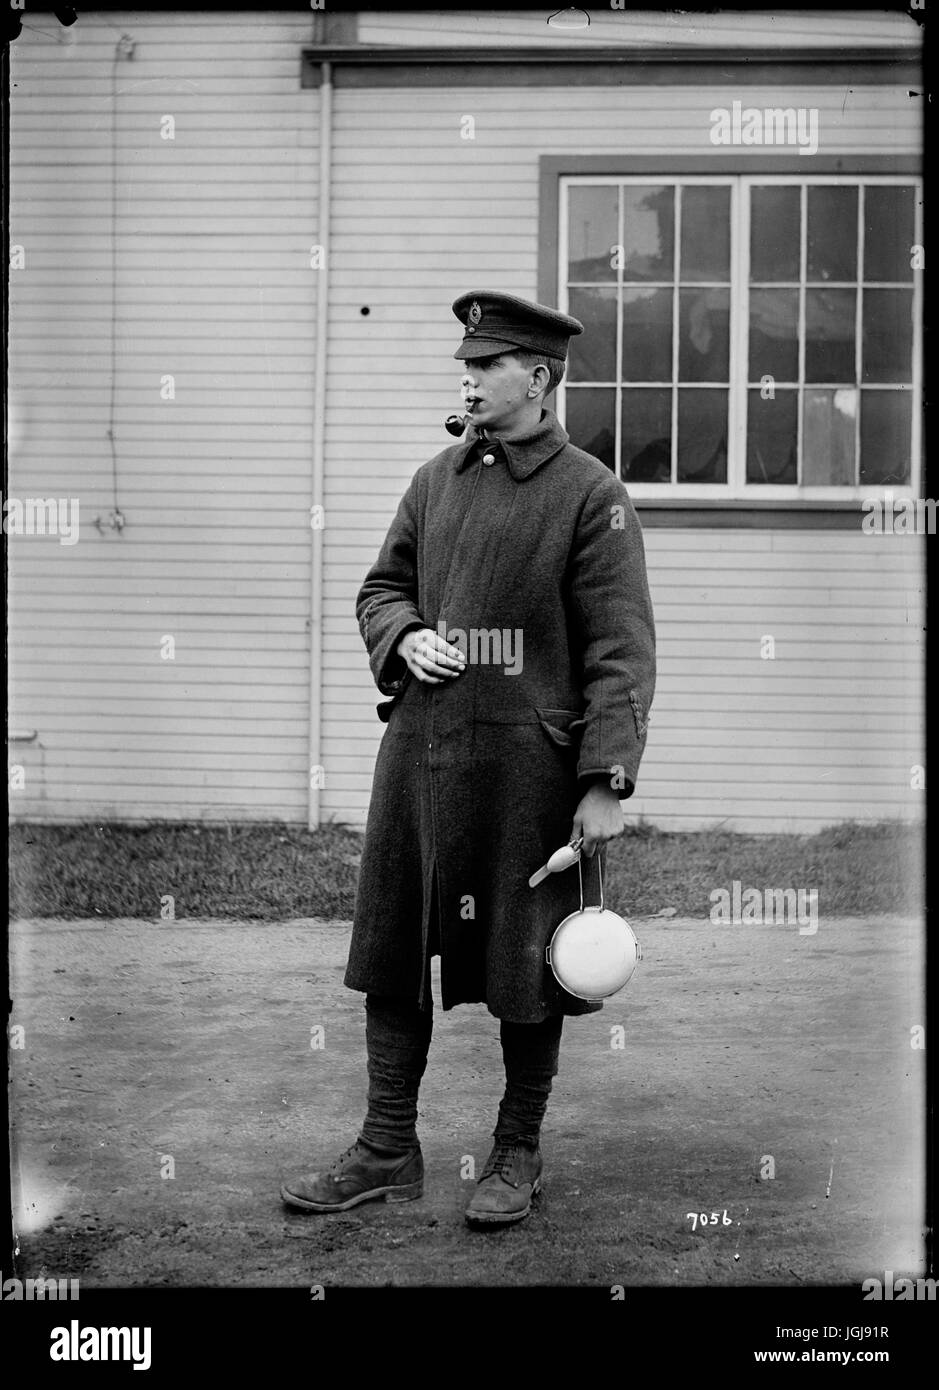 Canada in WWI - Man in military overcoat with mess kit - Stock Image